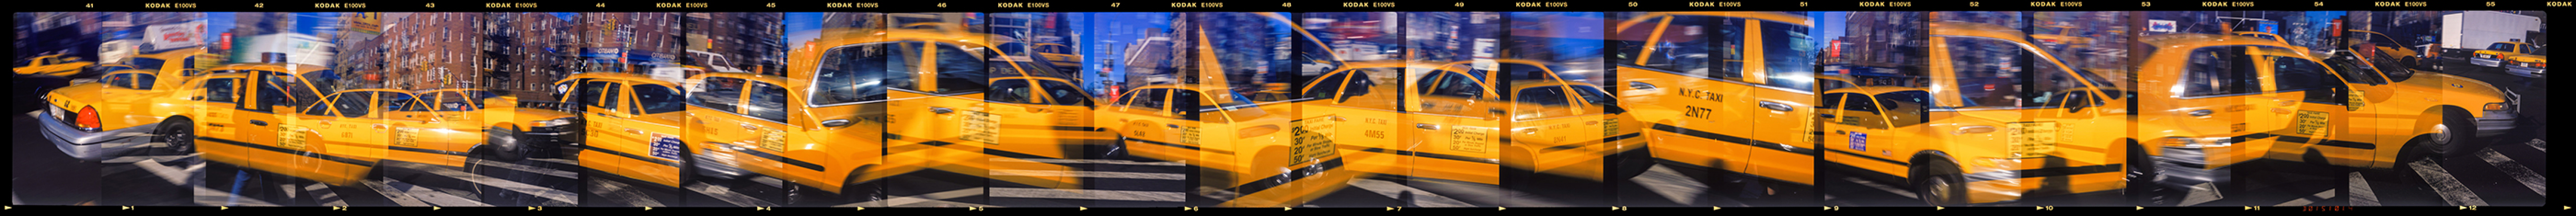 New York Taxi 1999 © William Furniss